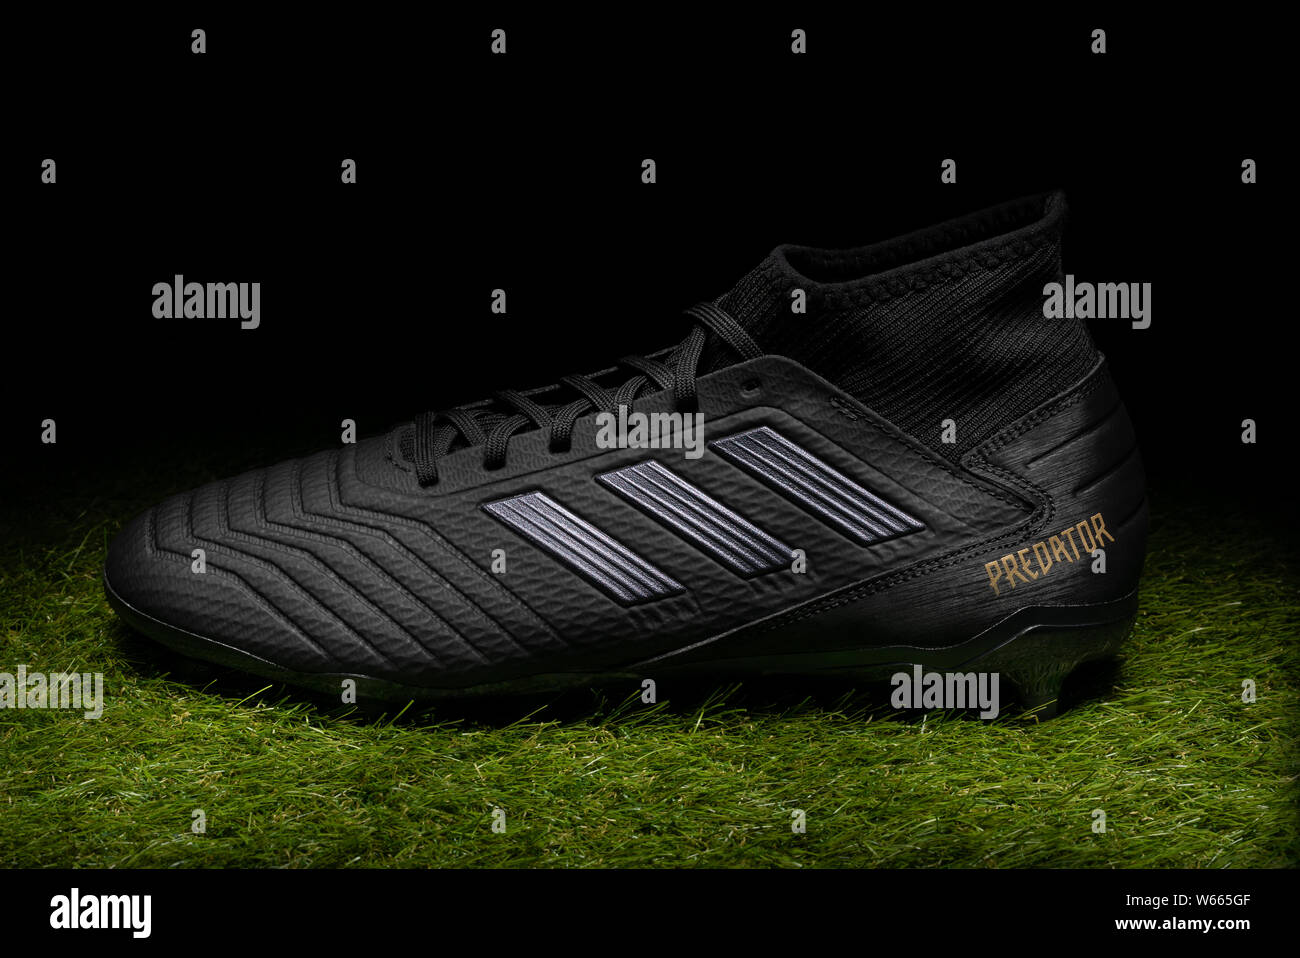 Adidas Football Boots High Resolution Stock Photography And Images Alamy